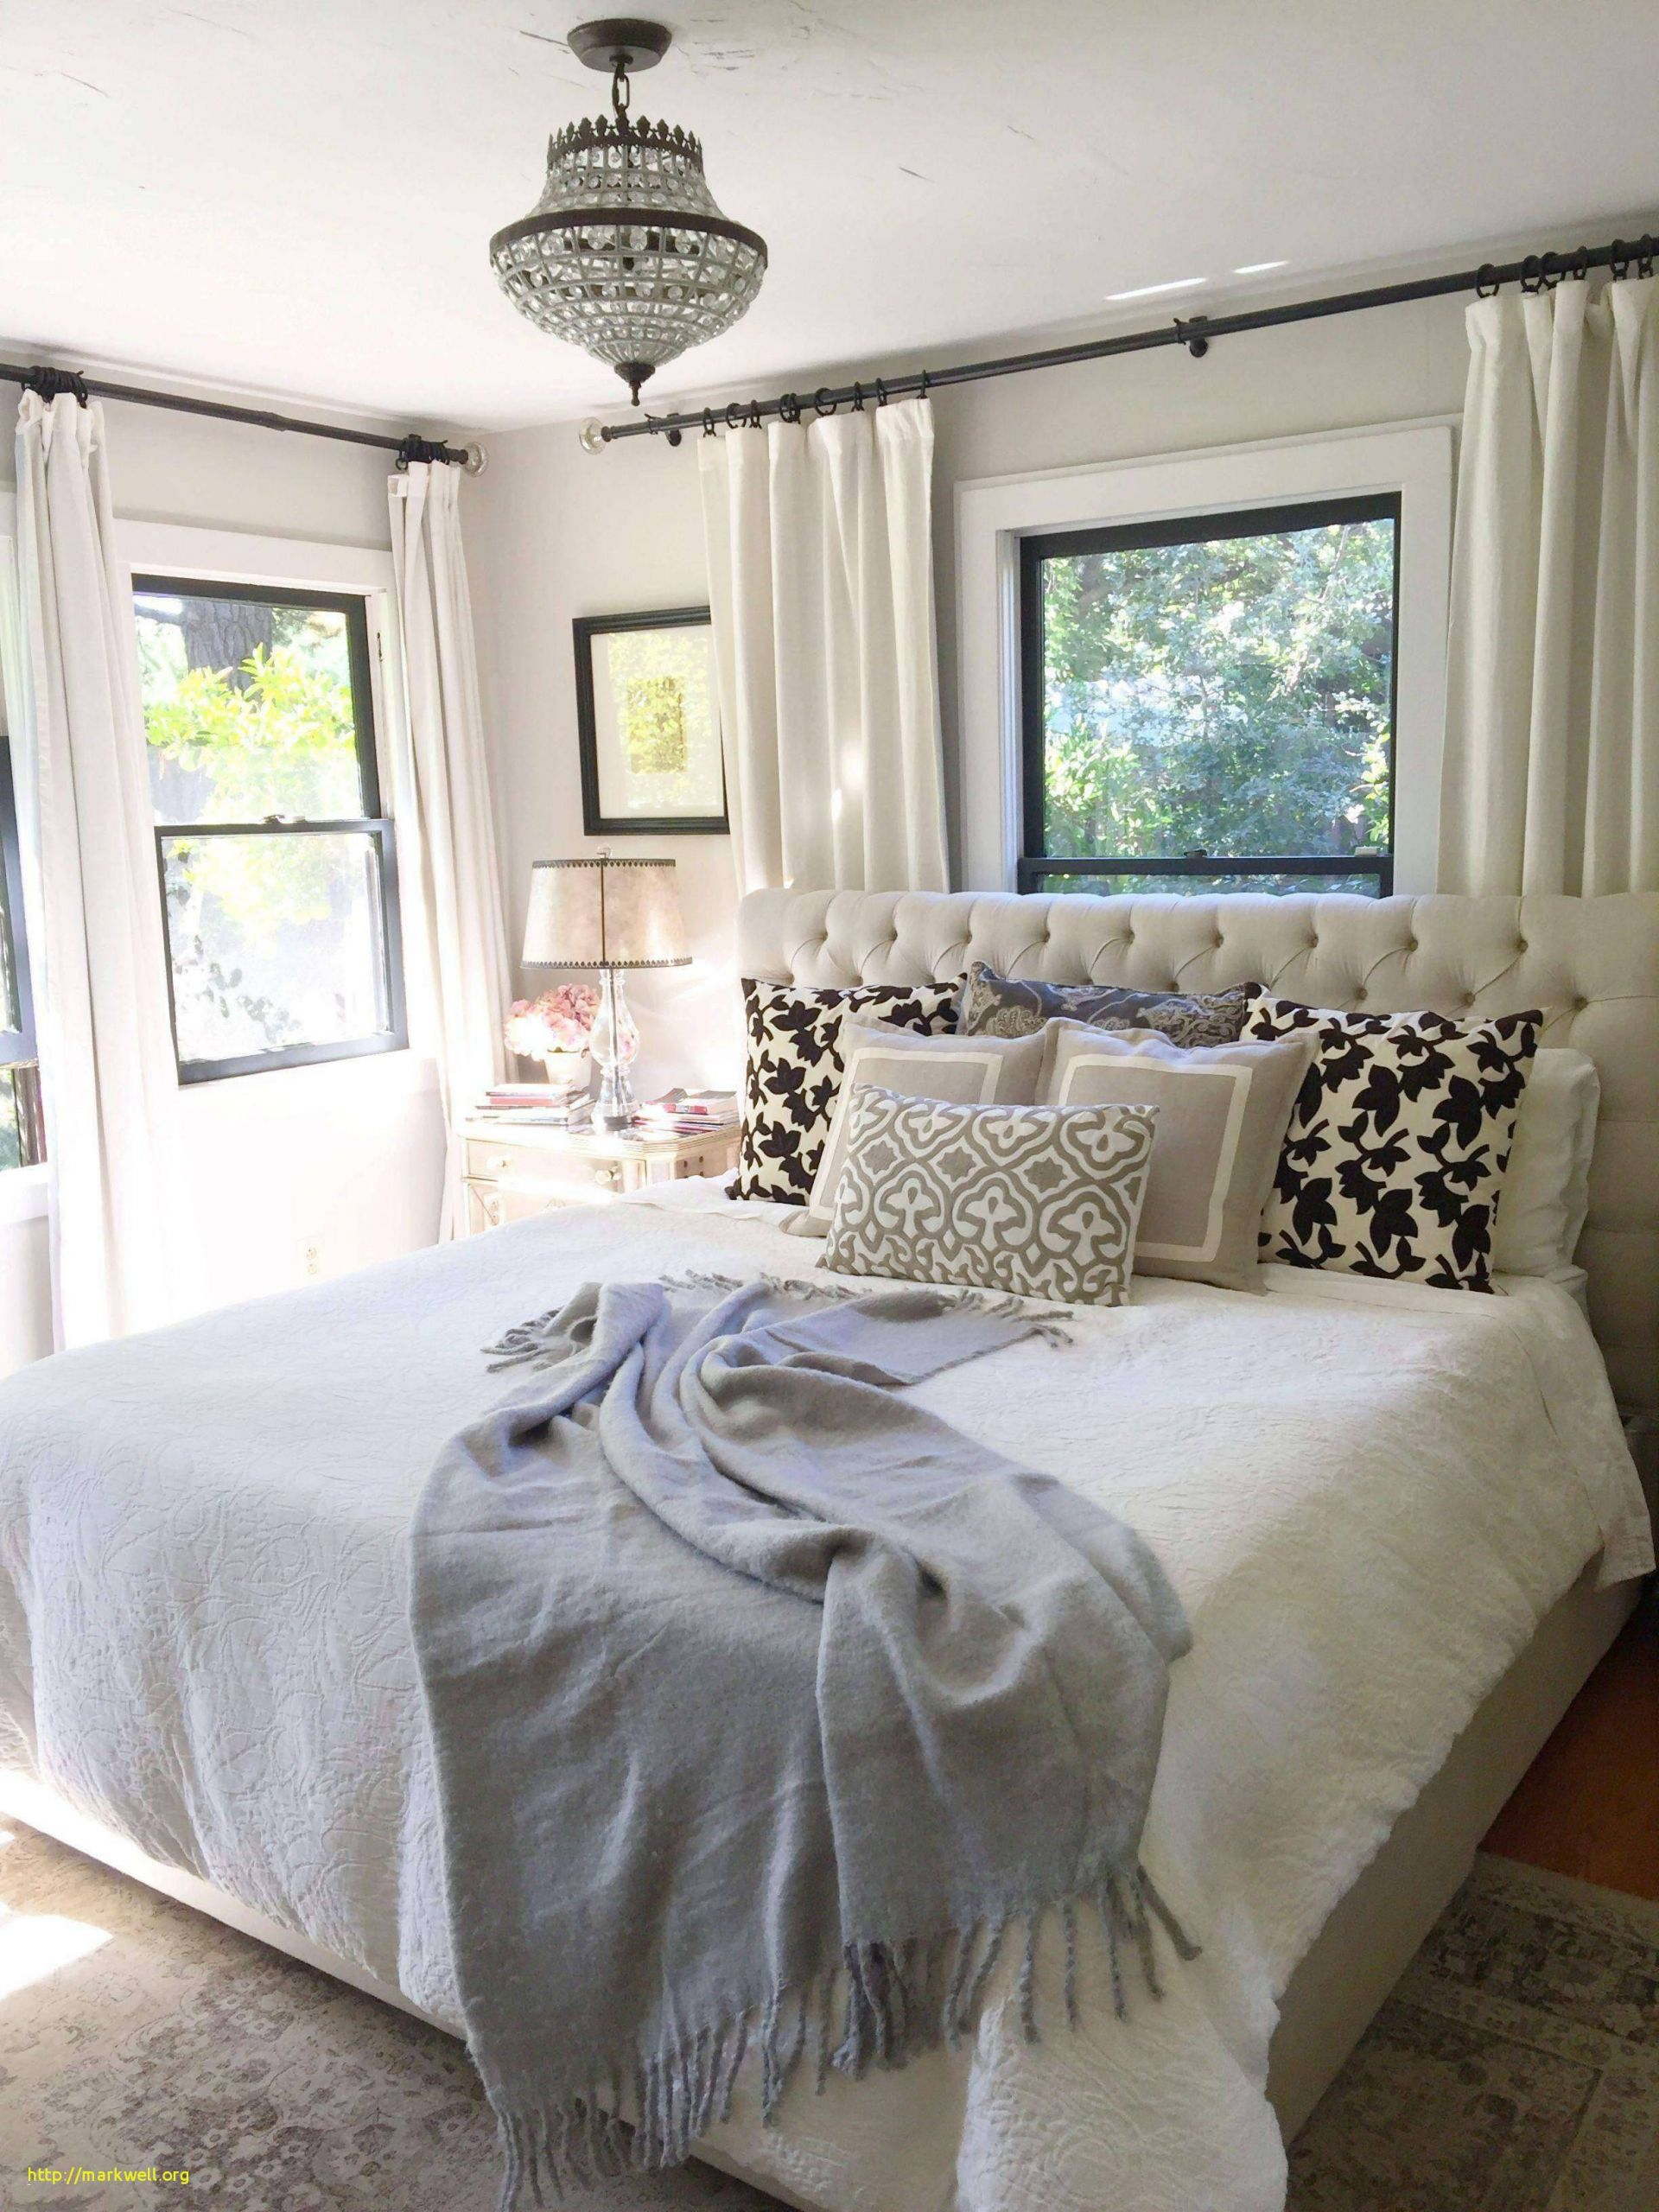 cheap bedroom chairs new 48 inspirational cheap bedroom furniture sets of cheap bedroom chairs